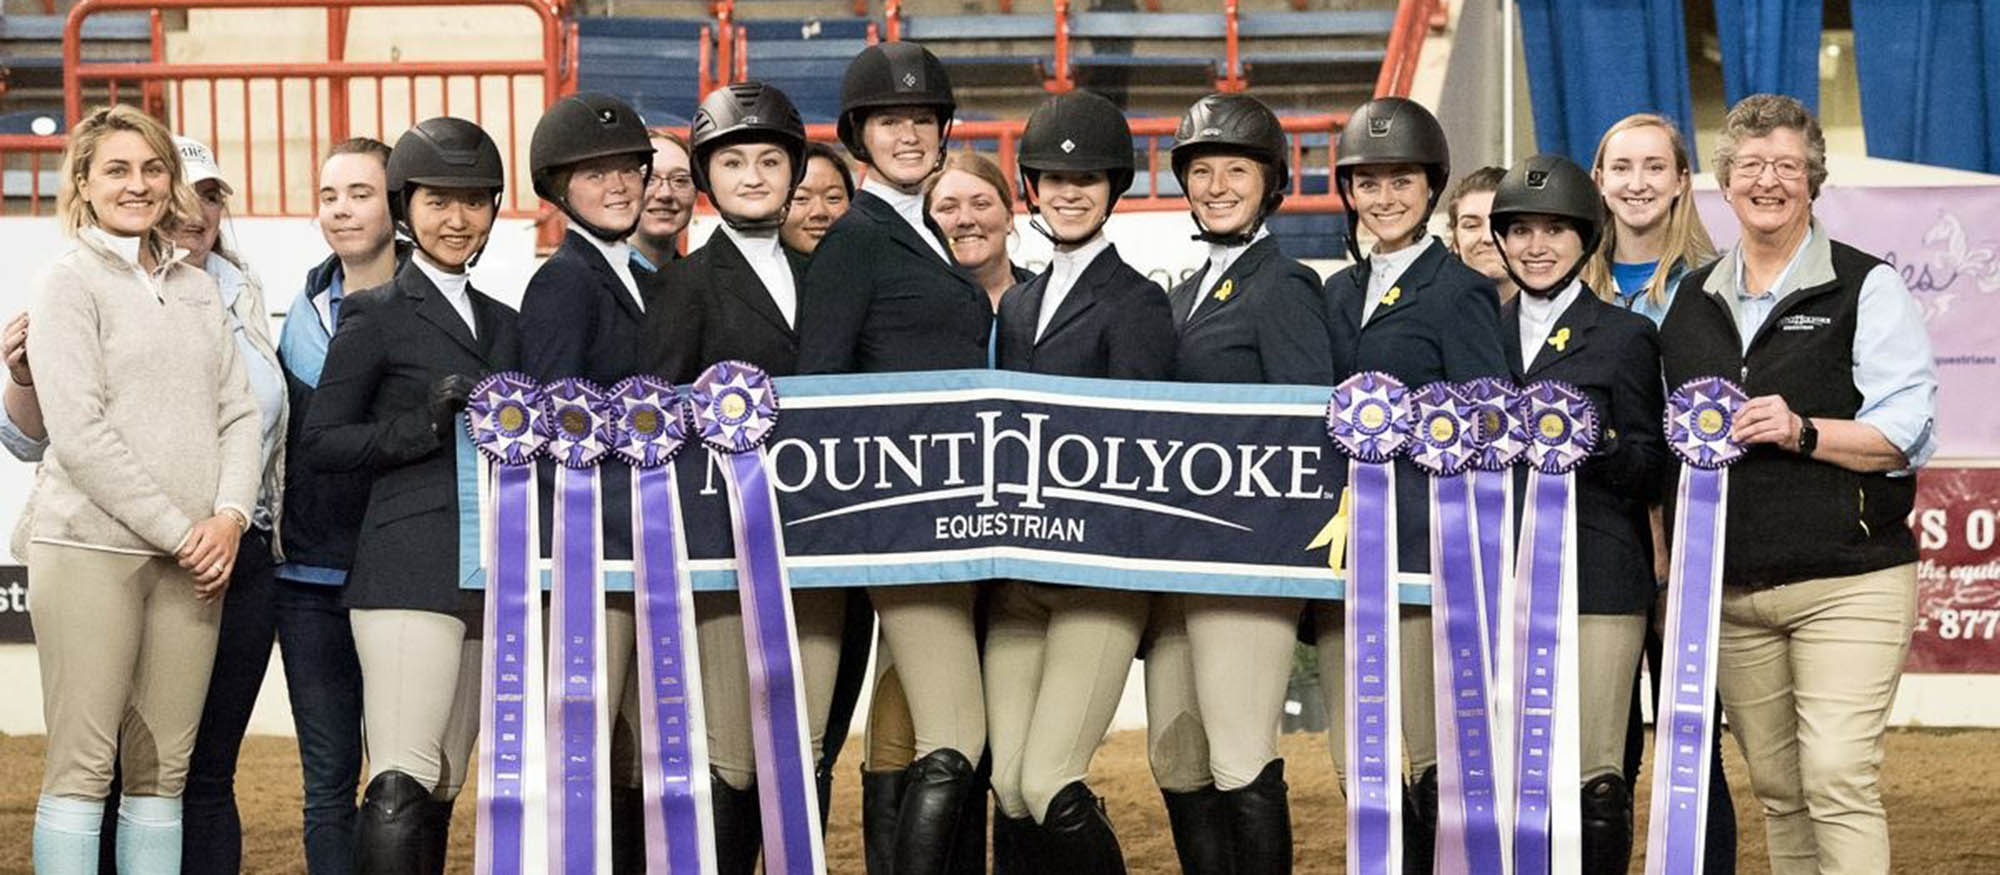 Photo of the Lyons riding team at Nationals 2018. Picture courtesy of Tricia Booker, USHJA